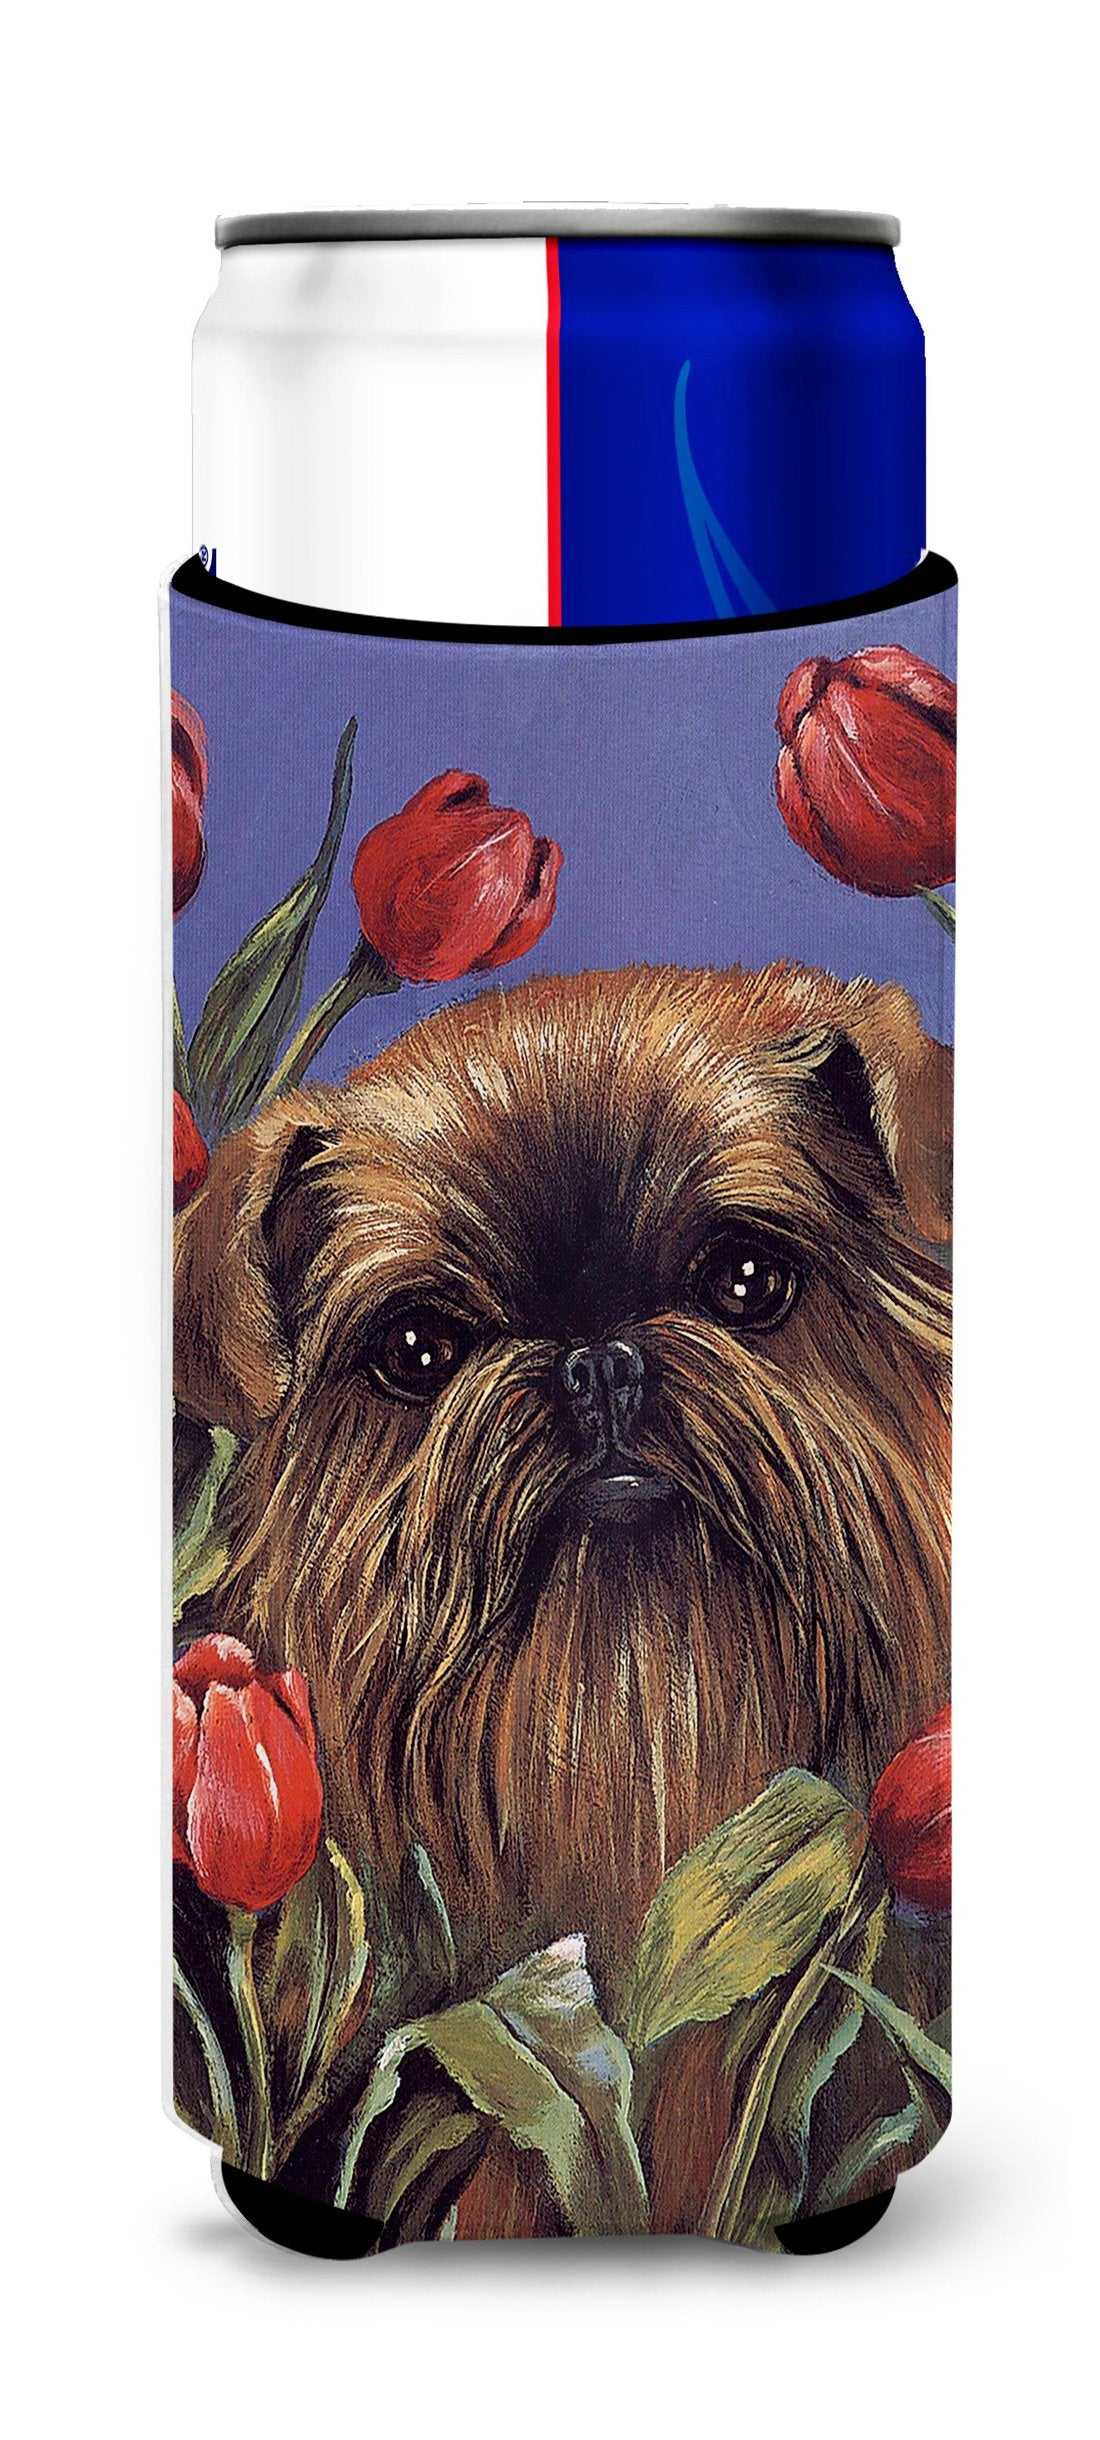 Brussels Griffon Peek a Boo Ultra Hugger for slim cans PPP3041MUK by Caroline's Treasures